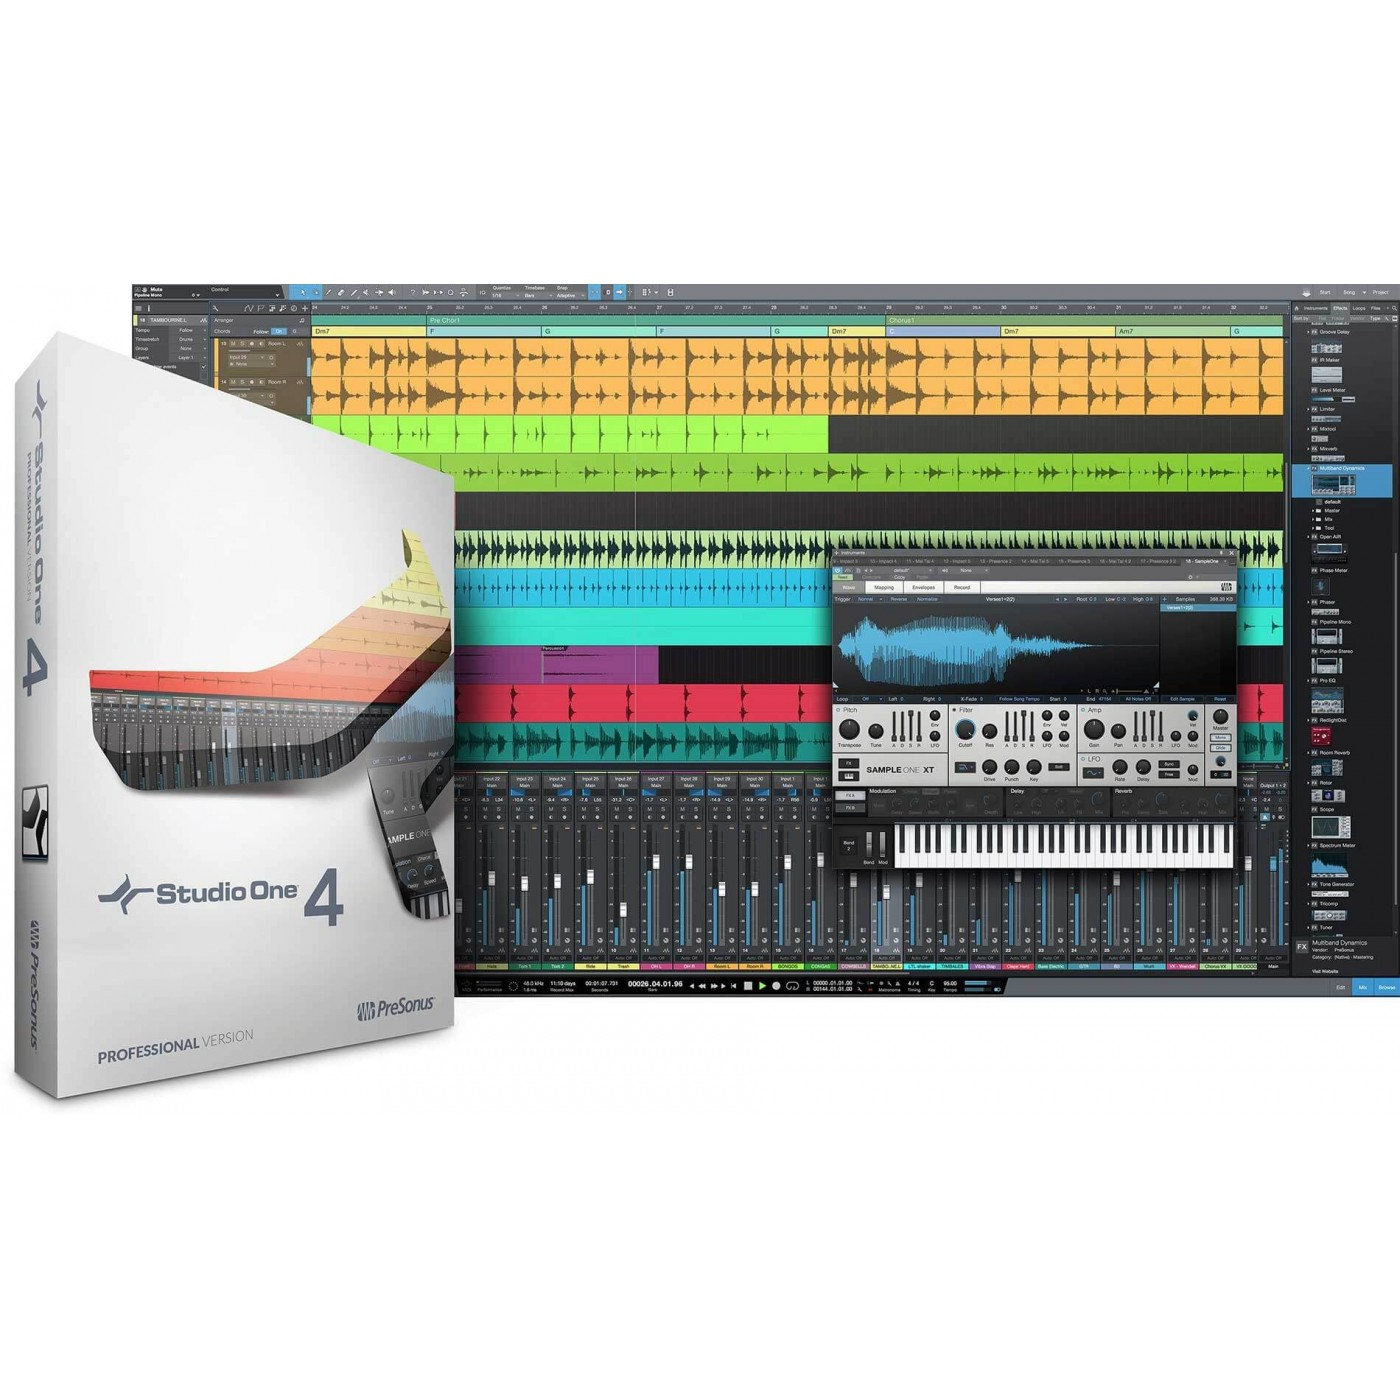 Presonus STUDIO ONE 4 Professional | Rage Audio